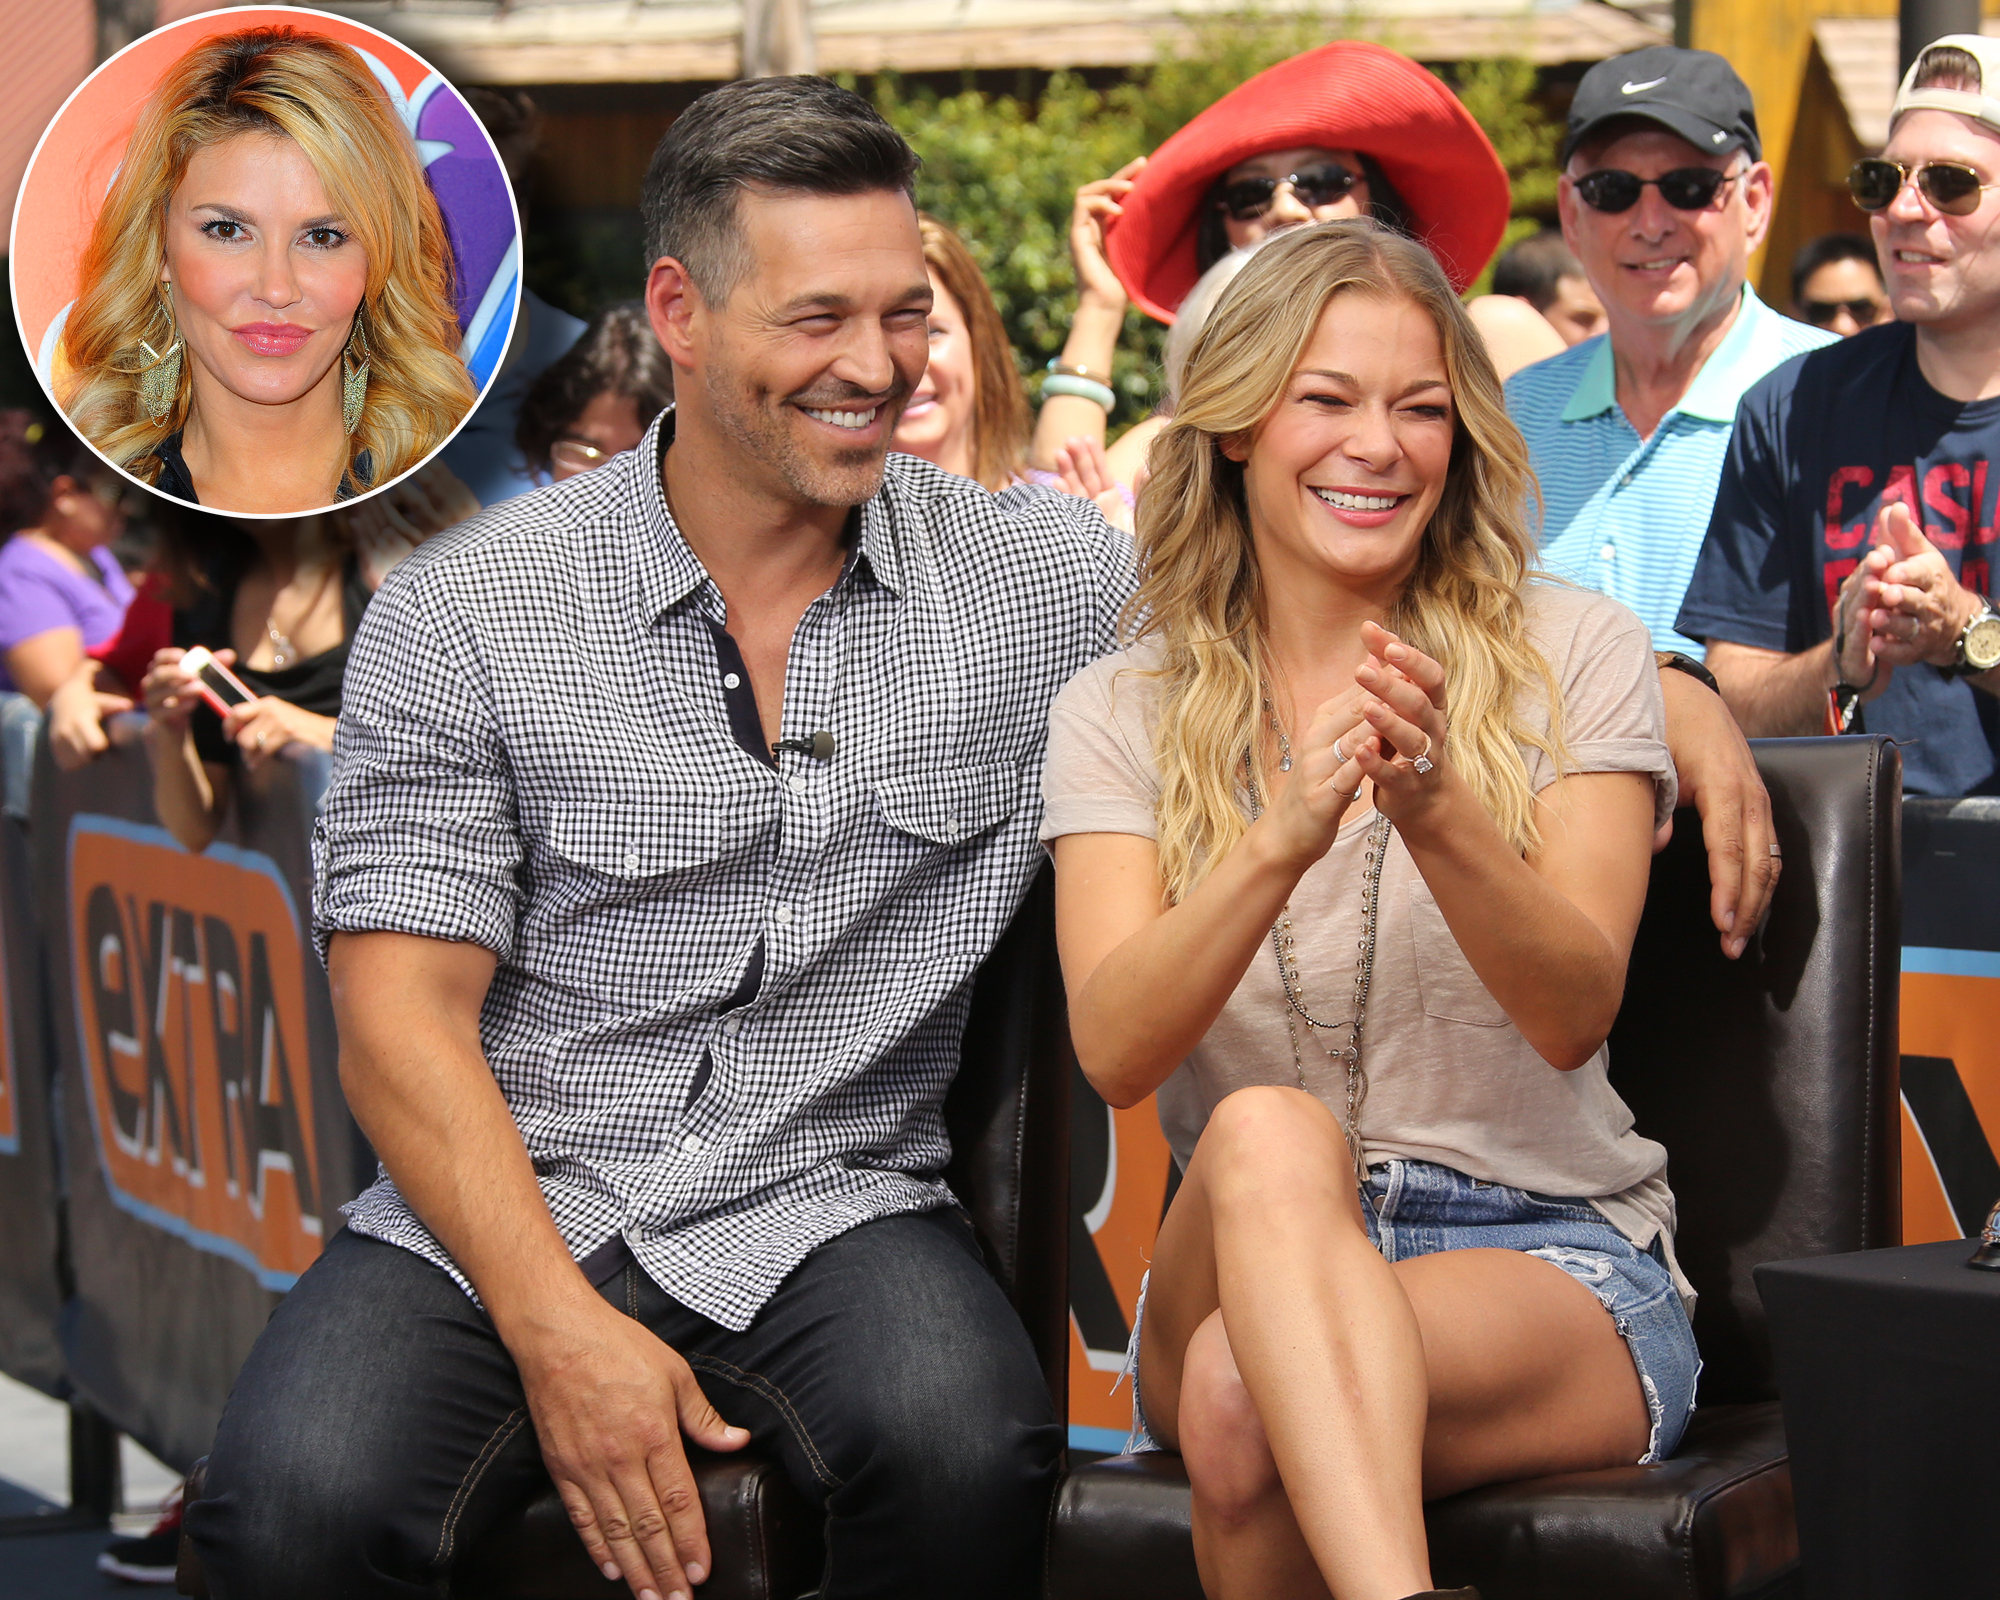 """Revisit Brandi Glanville's Feud With Eddie Cibrian and LeAnn Rimes - The feud seemed to settle down for a bit — until the Celebrity Big Brother star predicted that her ex-husband will divorce Rimes in a few years. """"I think when the 10-year mark [of their marriage] comes and he leaves her and takes half her stuff, we'll all be good together because they won't even be related,"""" Glanville said on Daily Pop ."""